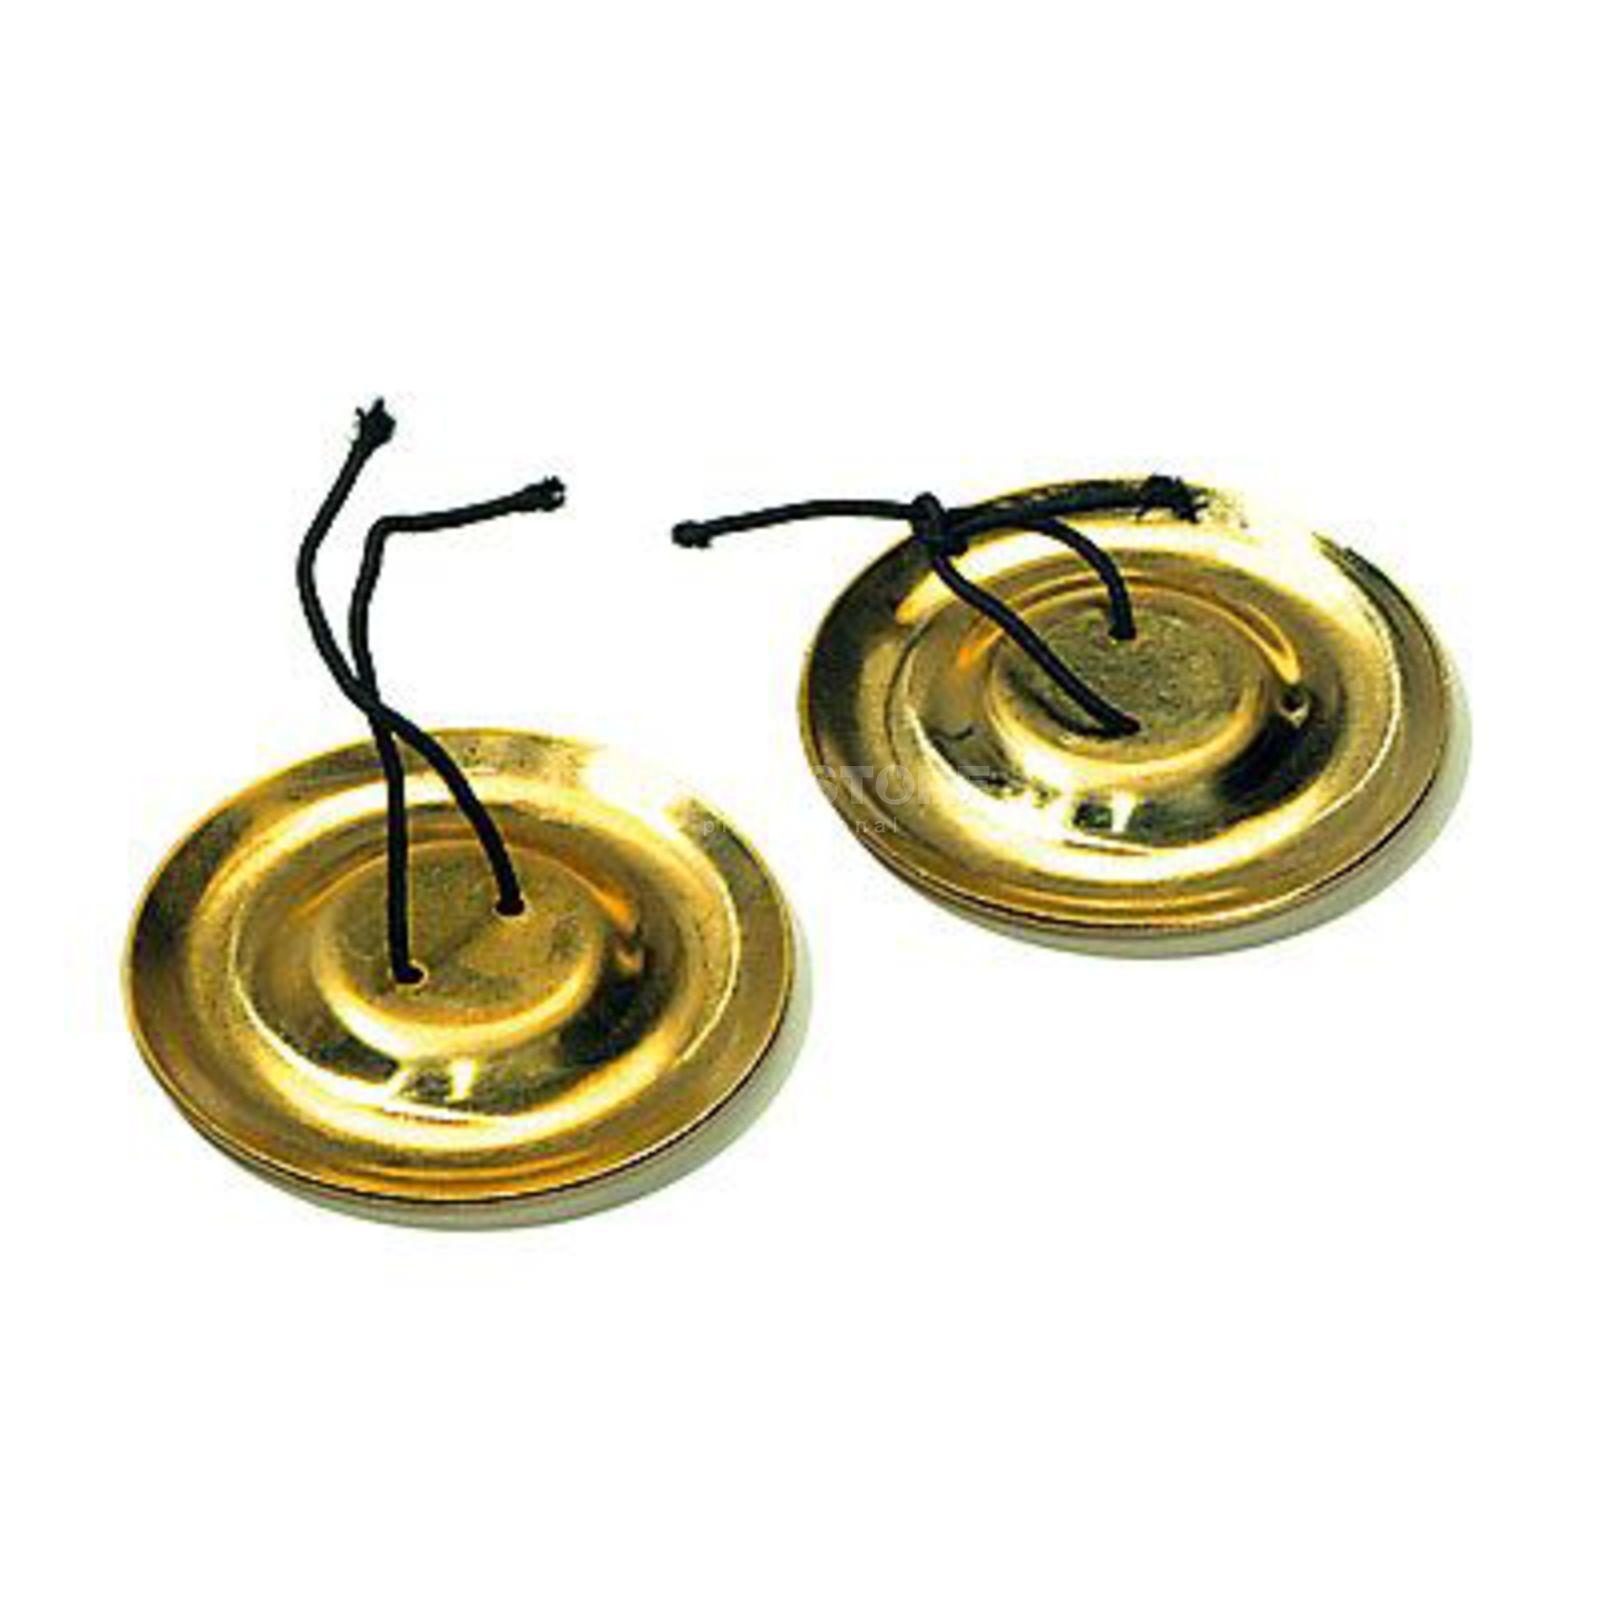 "Sonor Finger Cymbals PFC, 2"", Primary Produktbild"